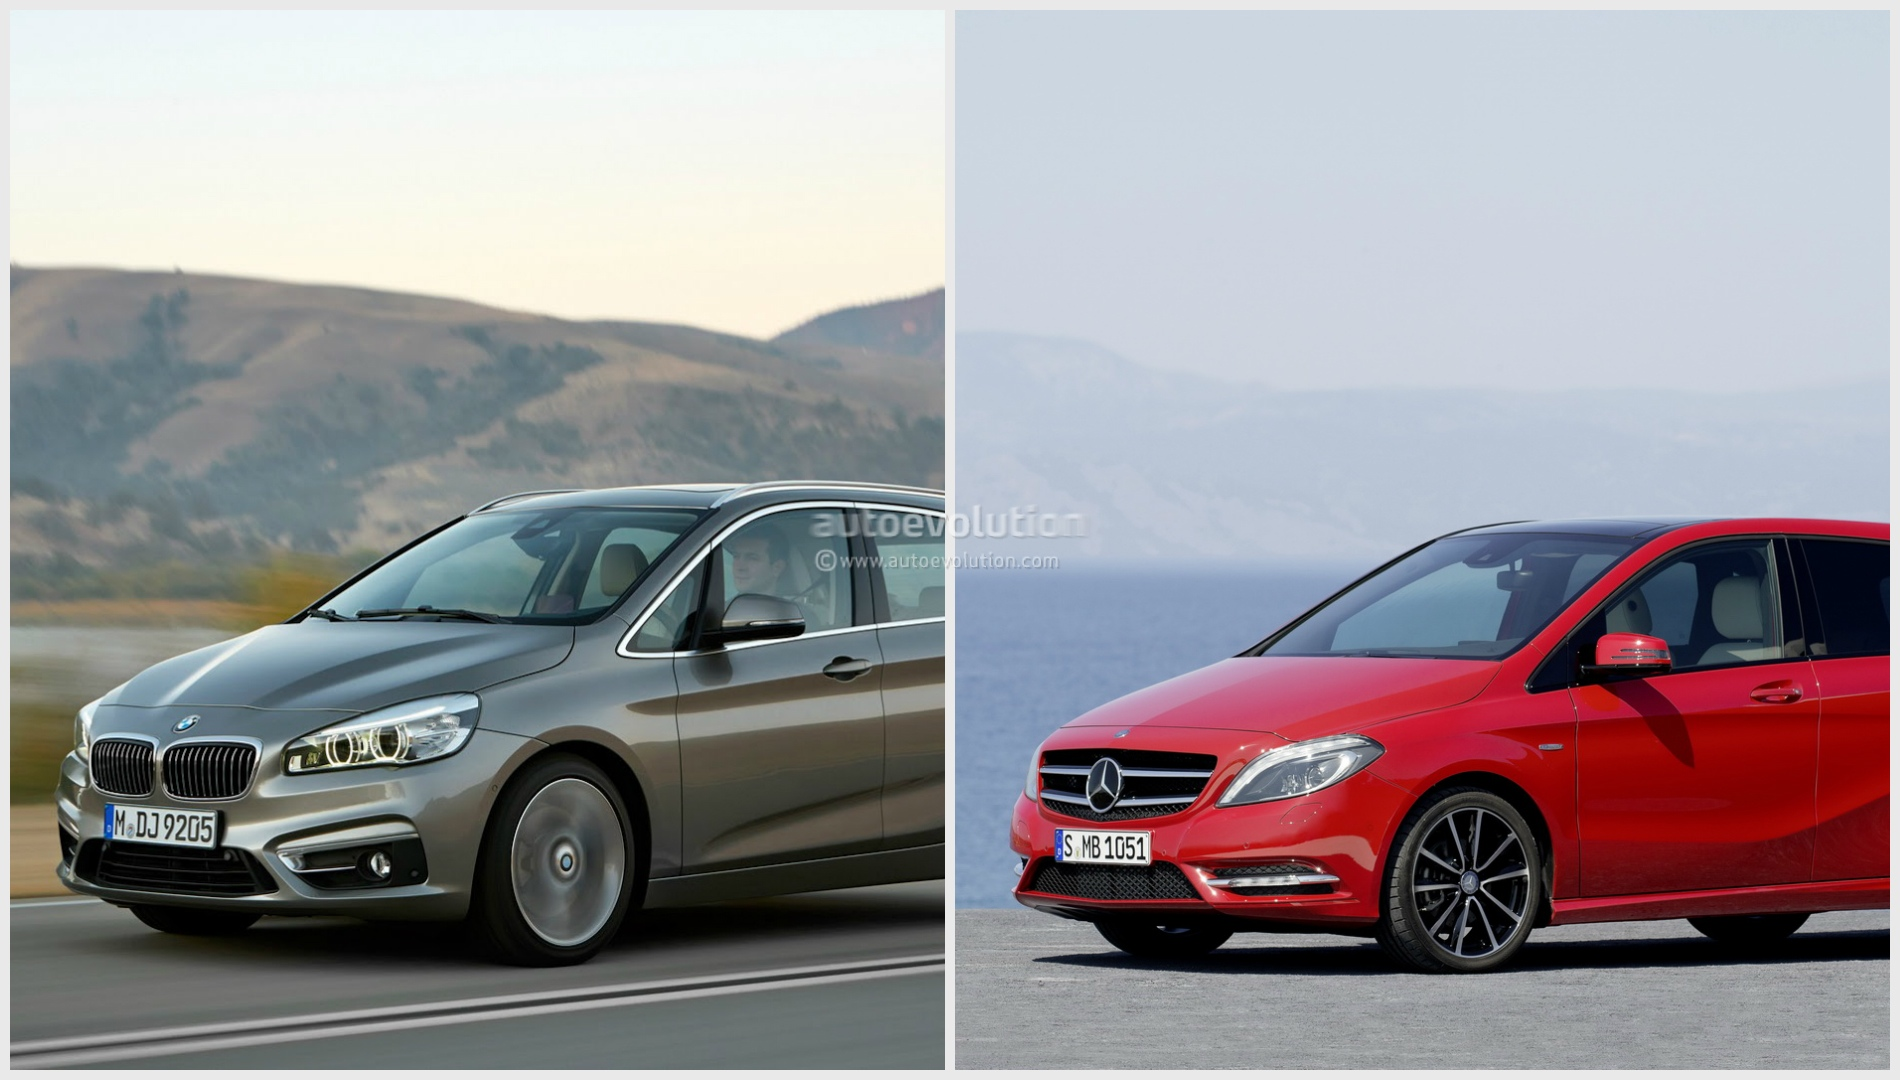 Bmw 2 series vs mercedes benz b class photo comparison for Mercedes benz compare